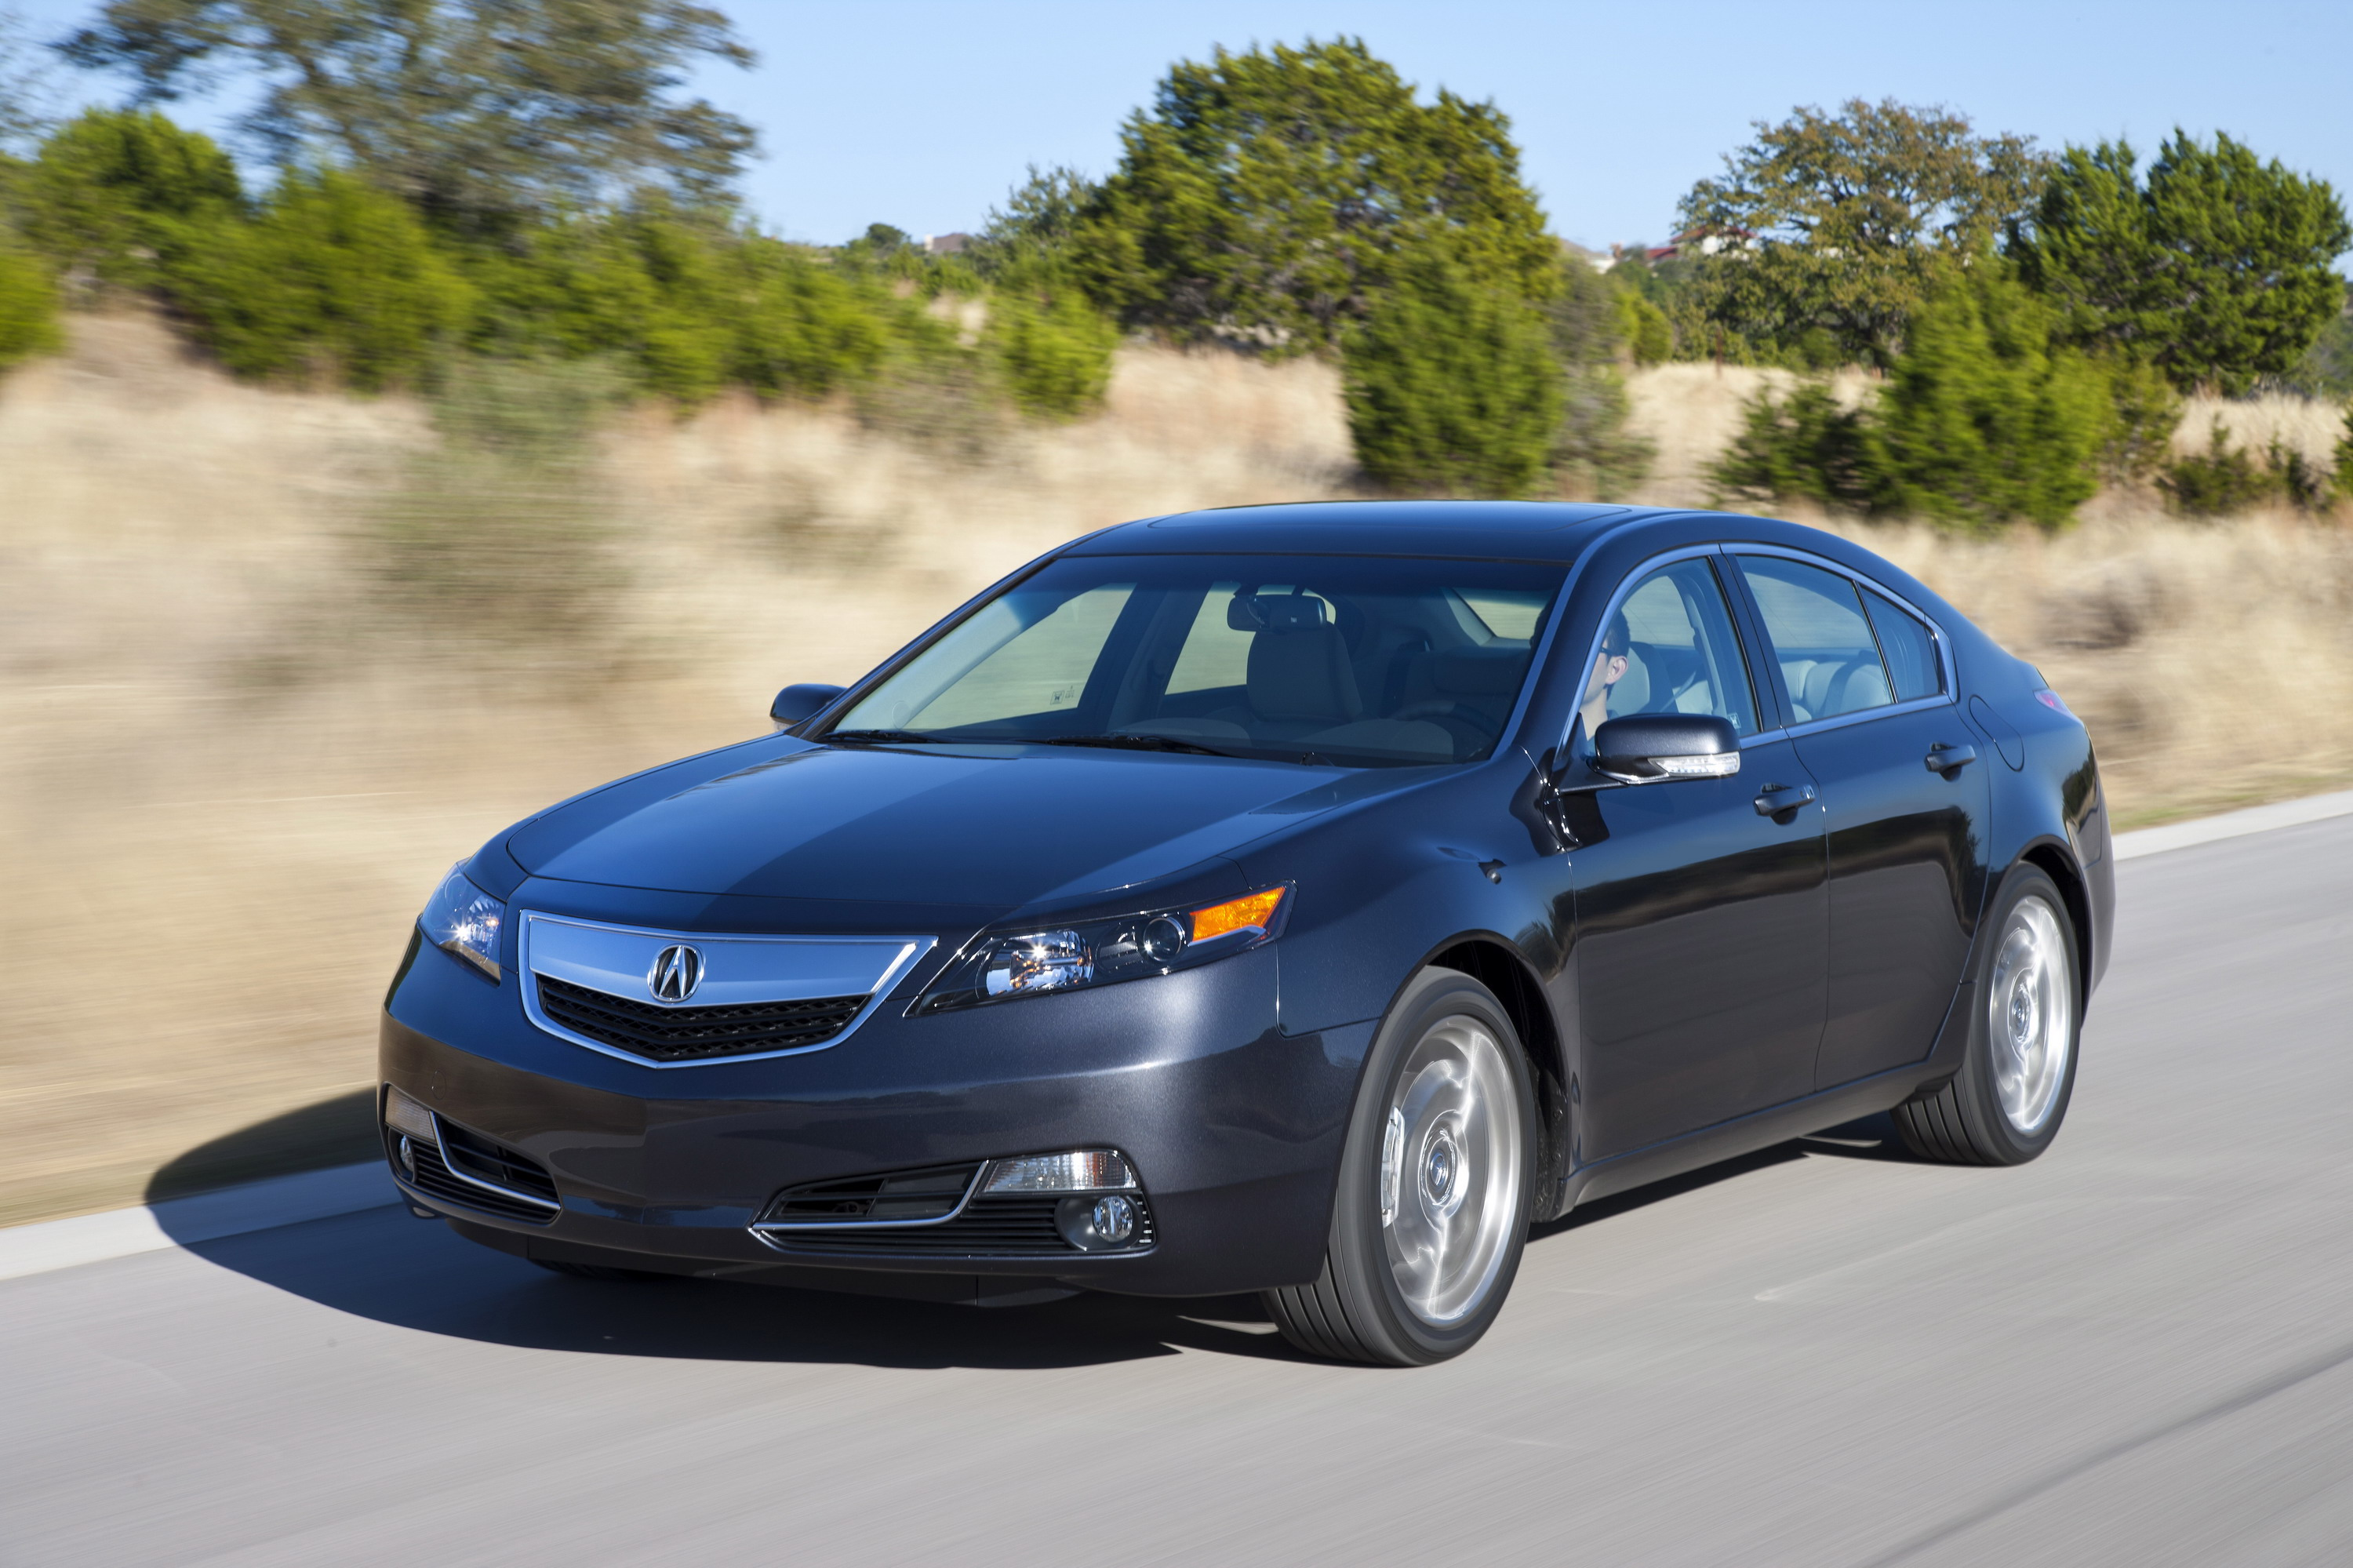 2014 acura tl top speed. Black Bedroom Furniture Sets. Home Design Ideas